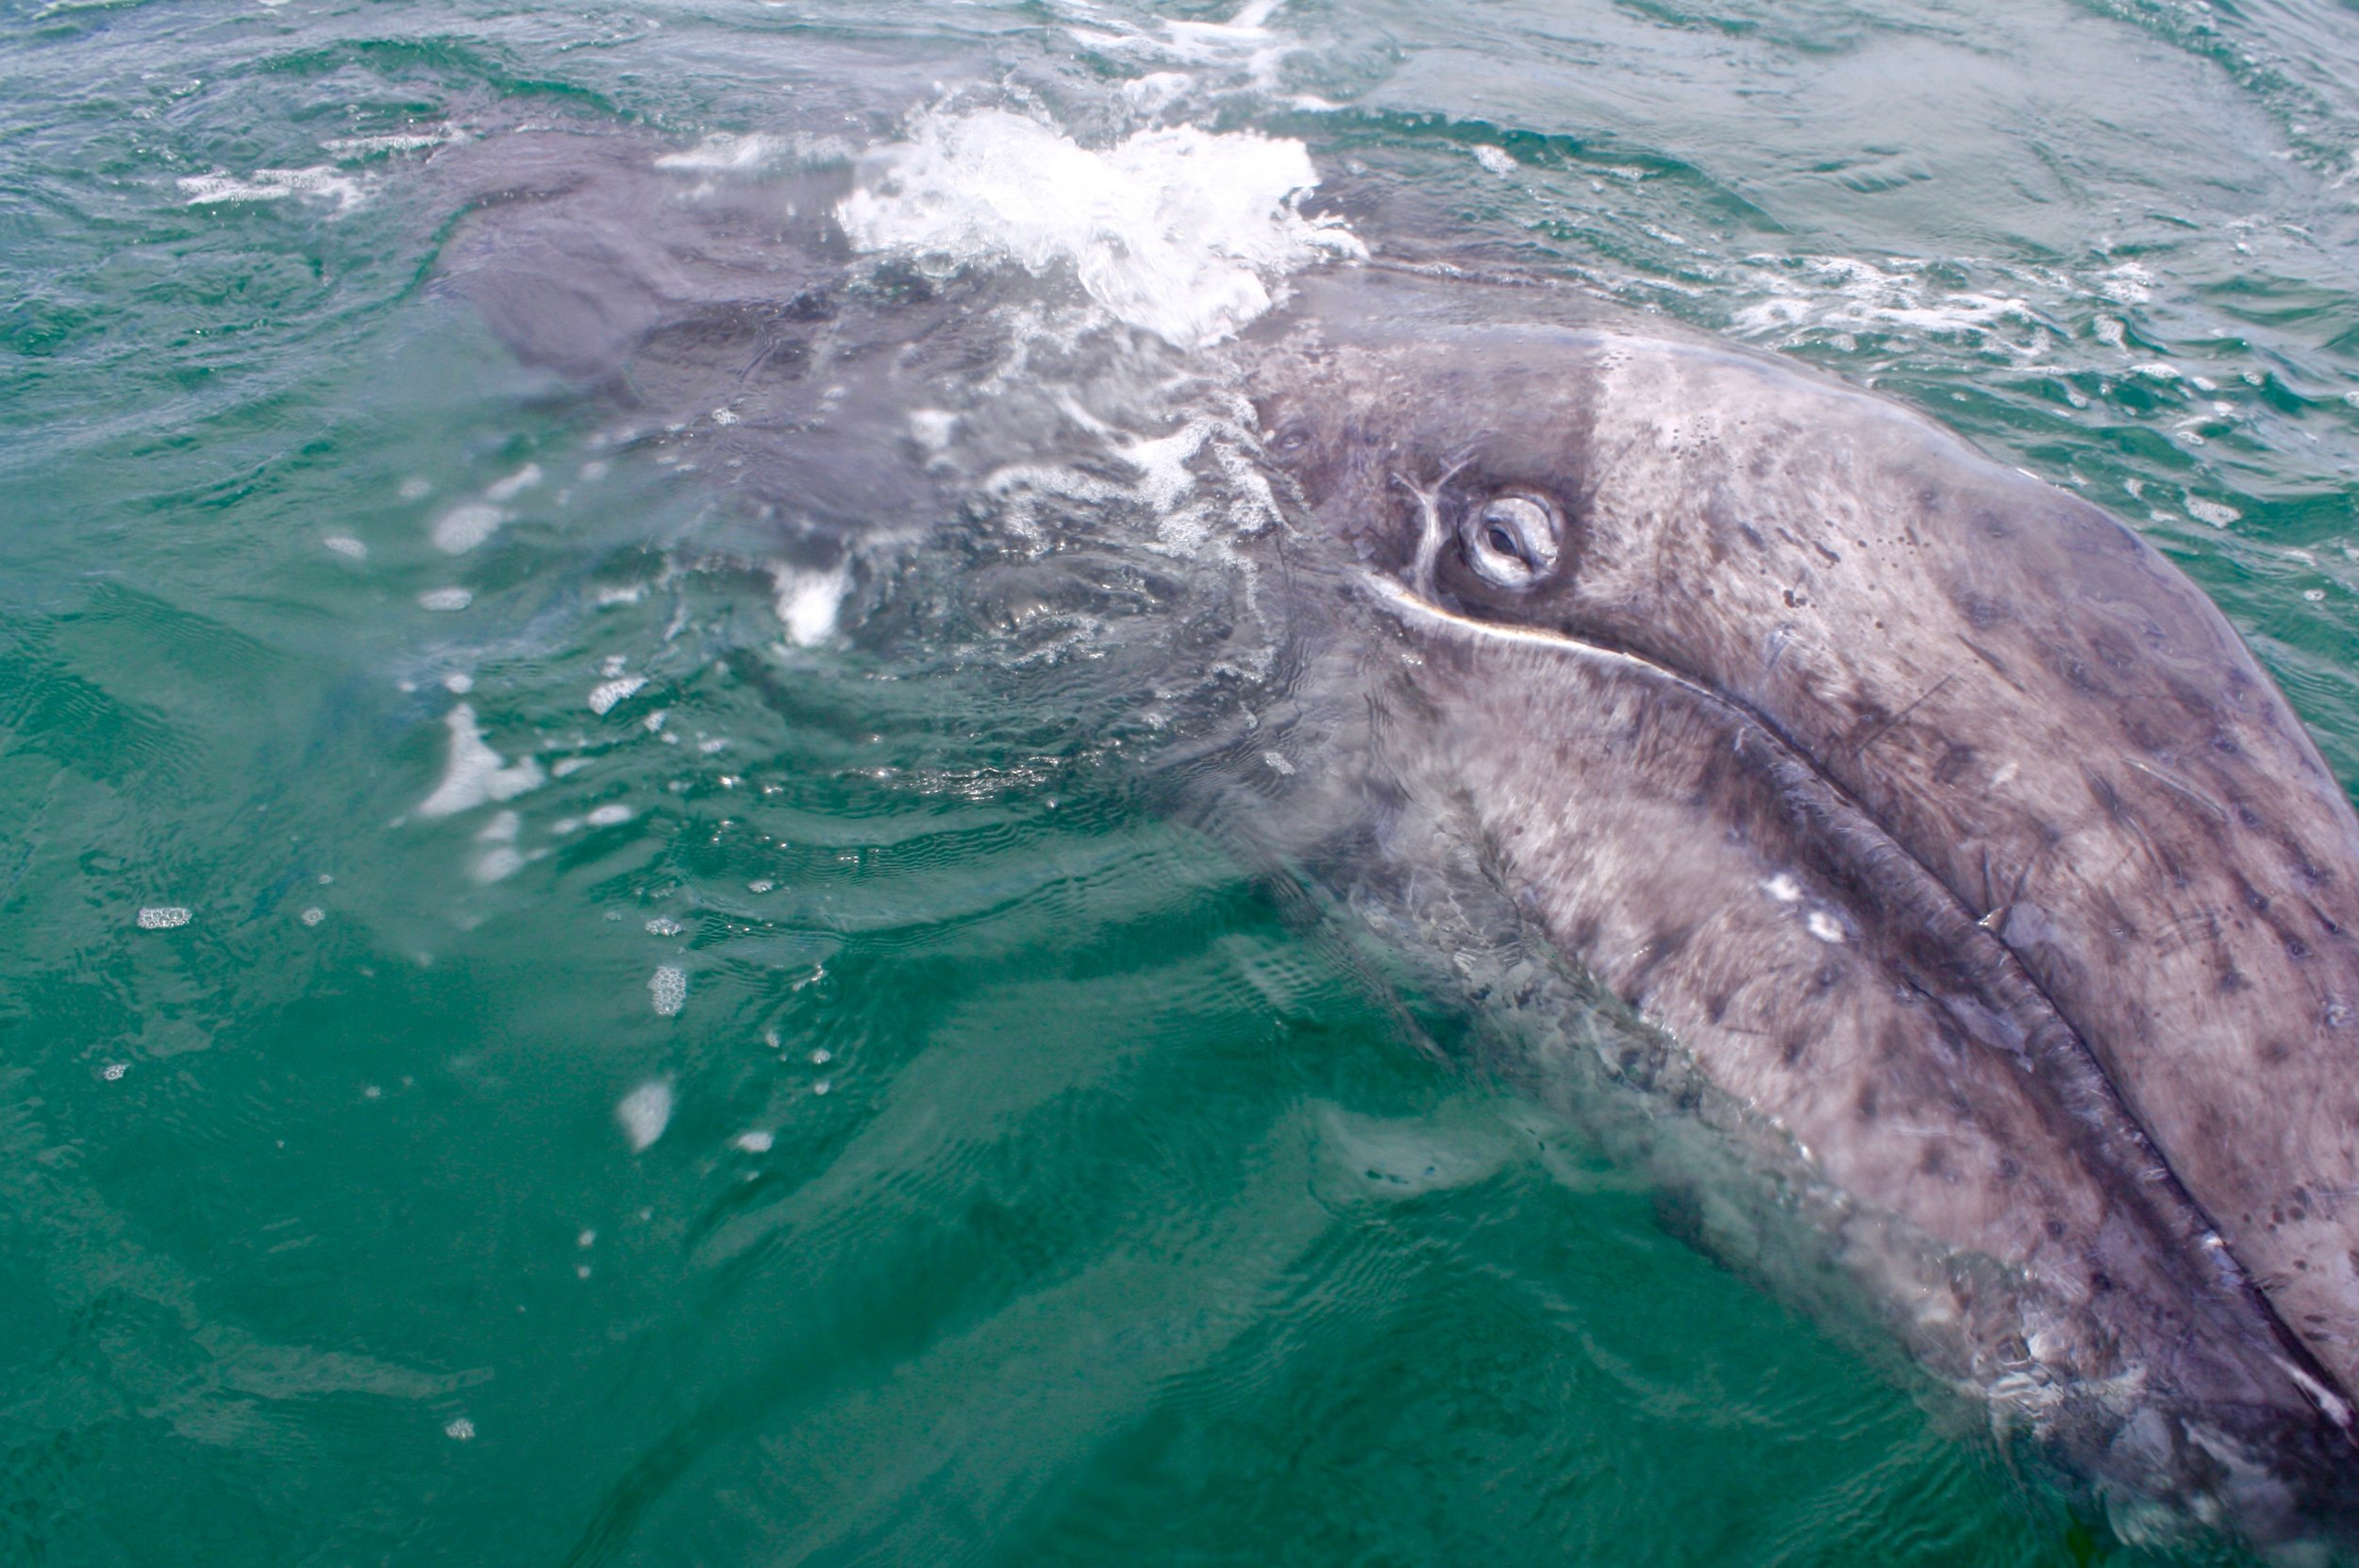 Grey whales in Baja California. Responsible ecotourism in Mexico. Learn more on The Uprooted Rose travel blog.